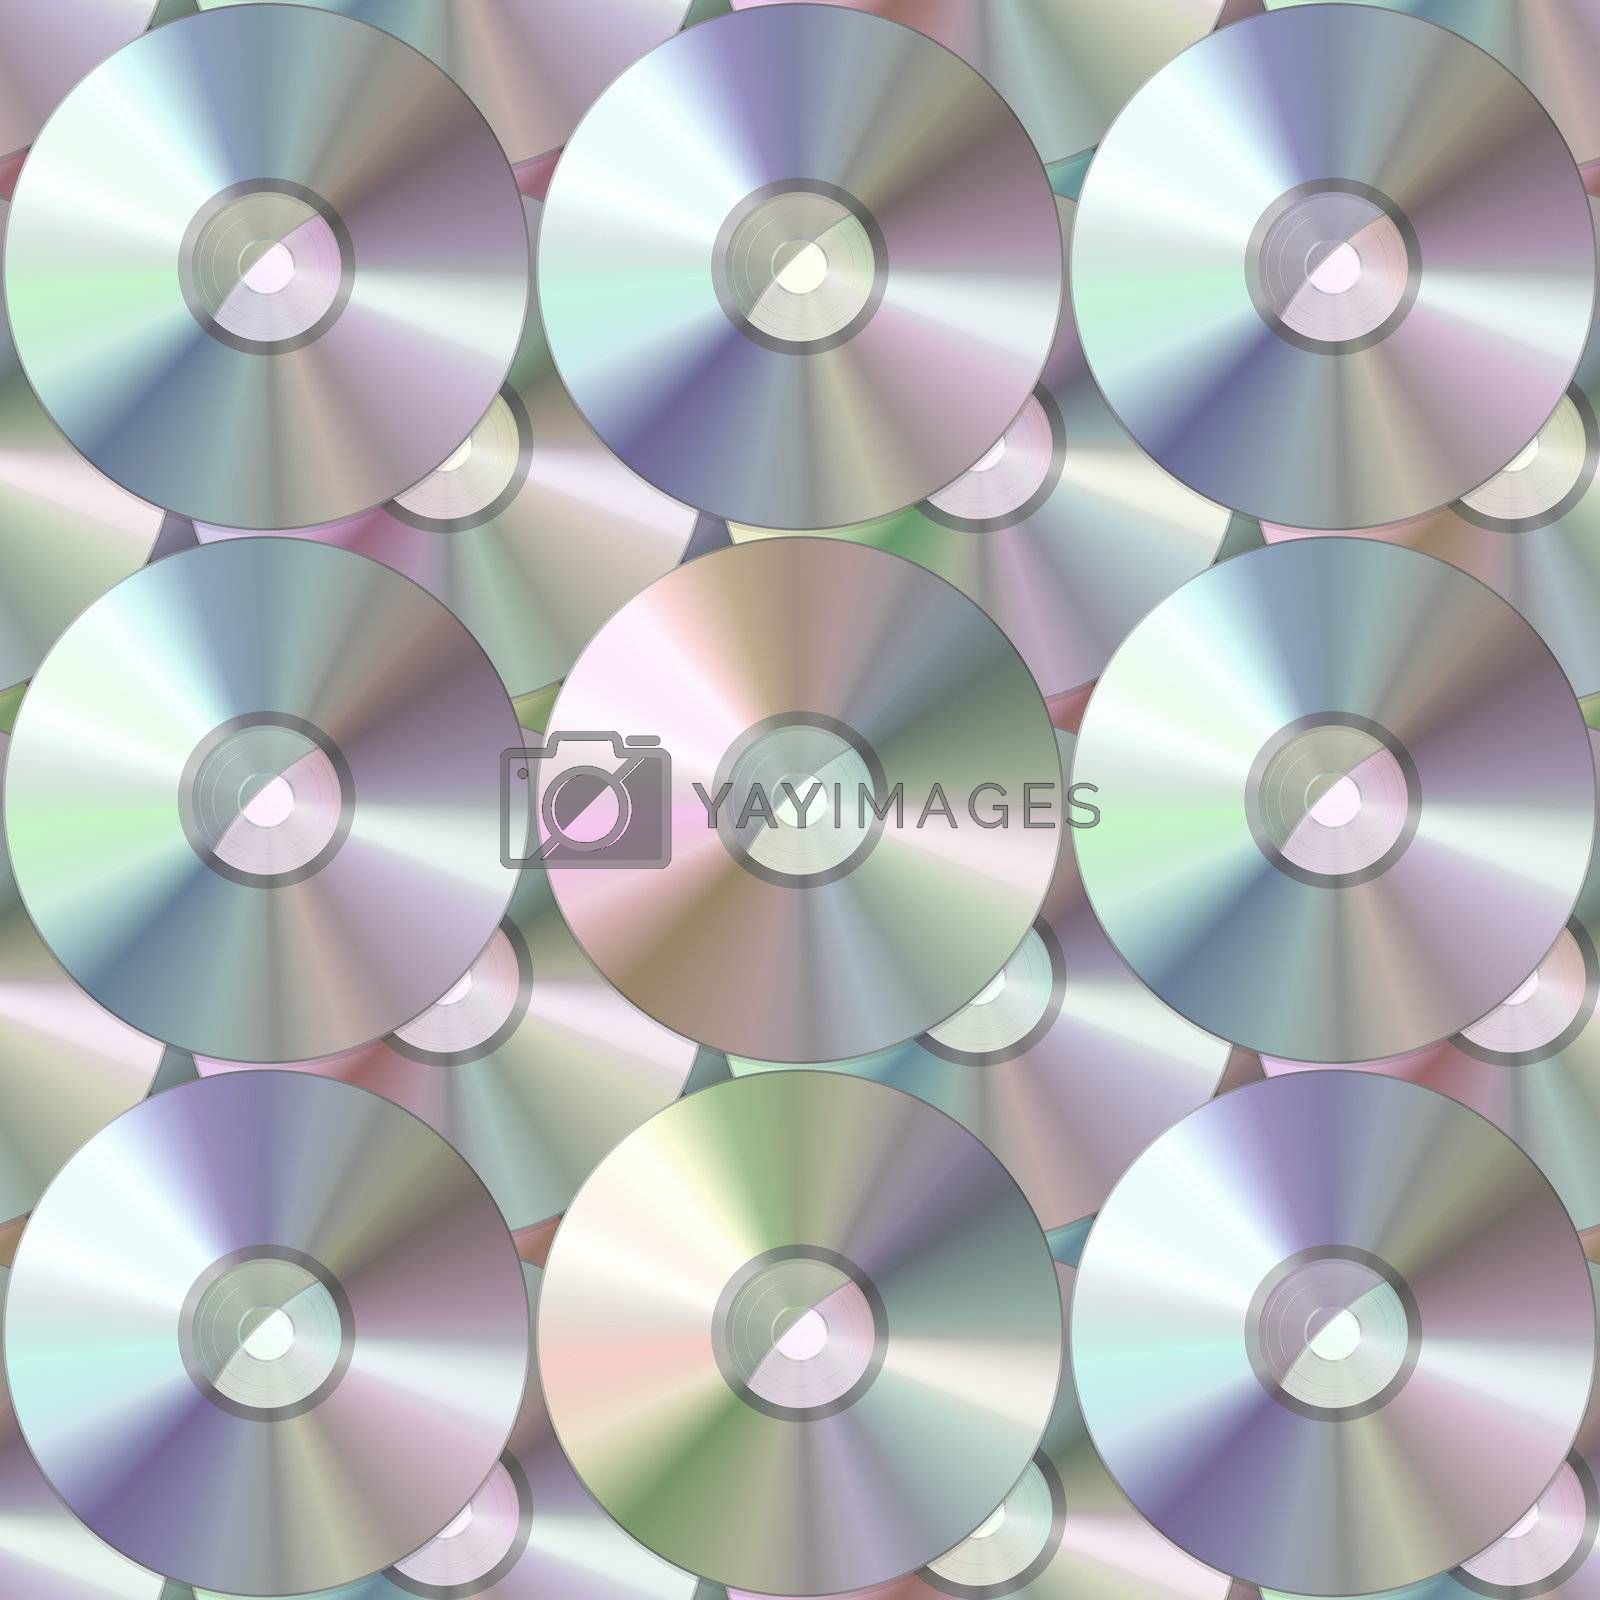 Blank media background texture - these are either CDs or DVDs.  This image tiles seamlessly as a pattern.